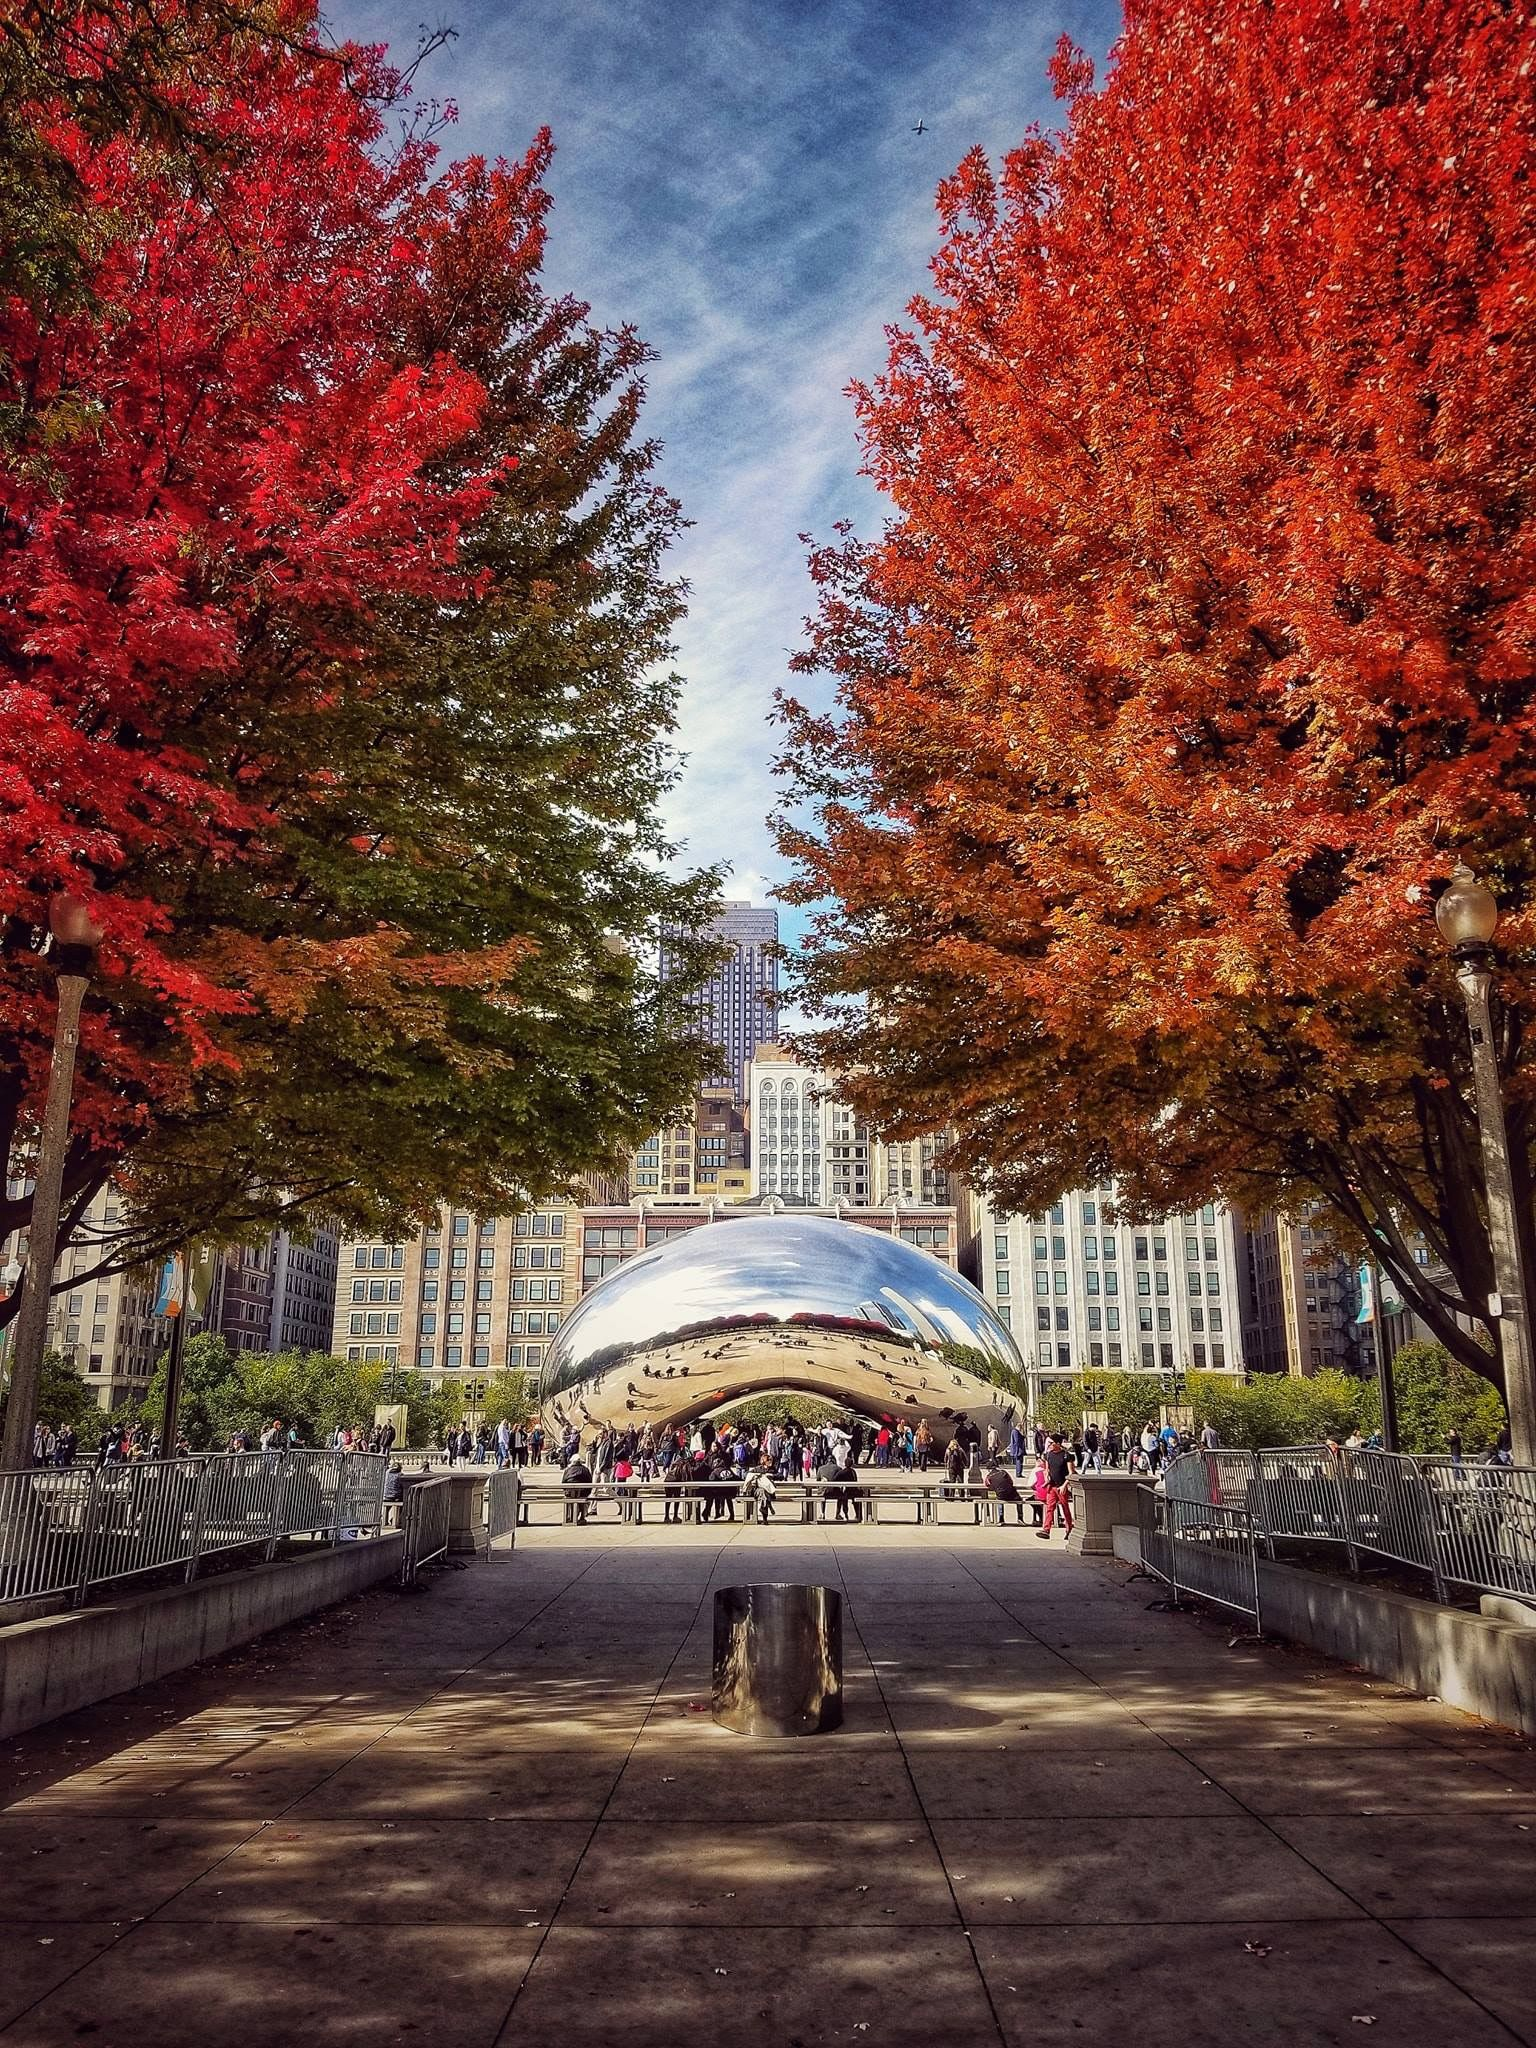 Cloudgate Or Some Call It The Bean On A Beautiful Fall Day In Millennium Park Downtown Chicago Downtown Chicago Millennium Park Chicago Illinois